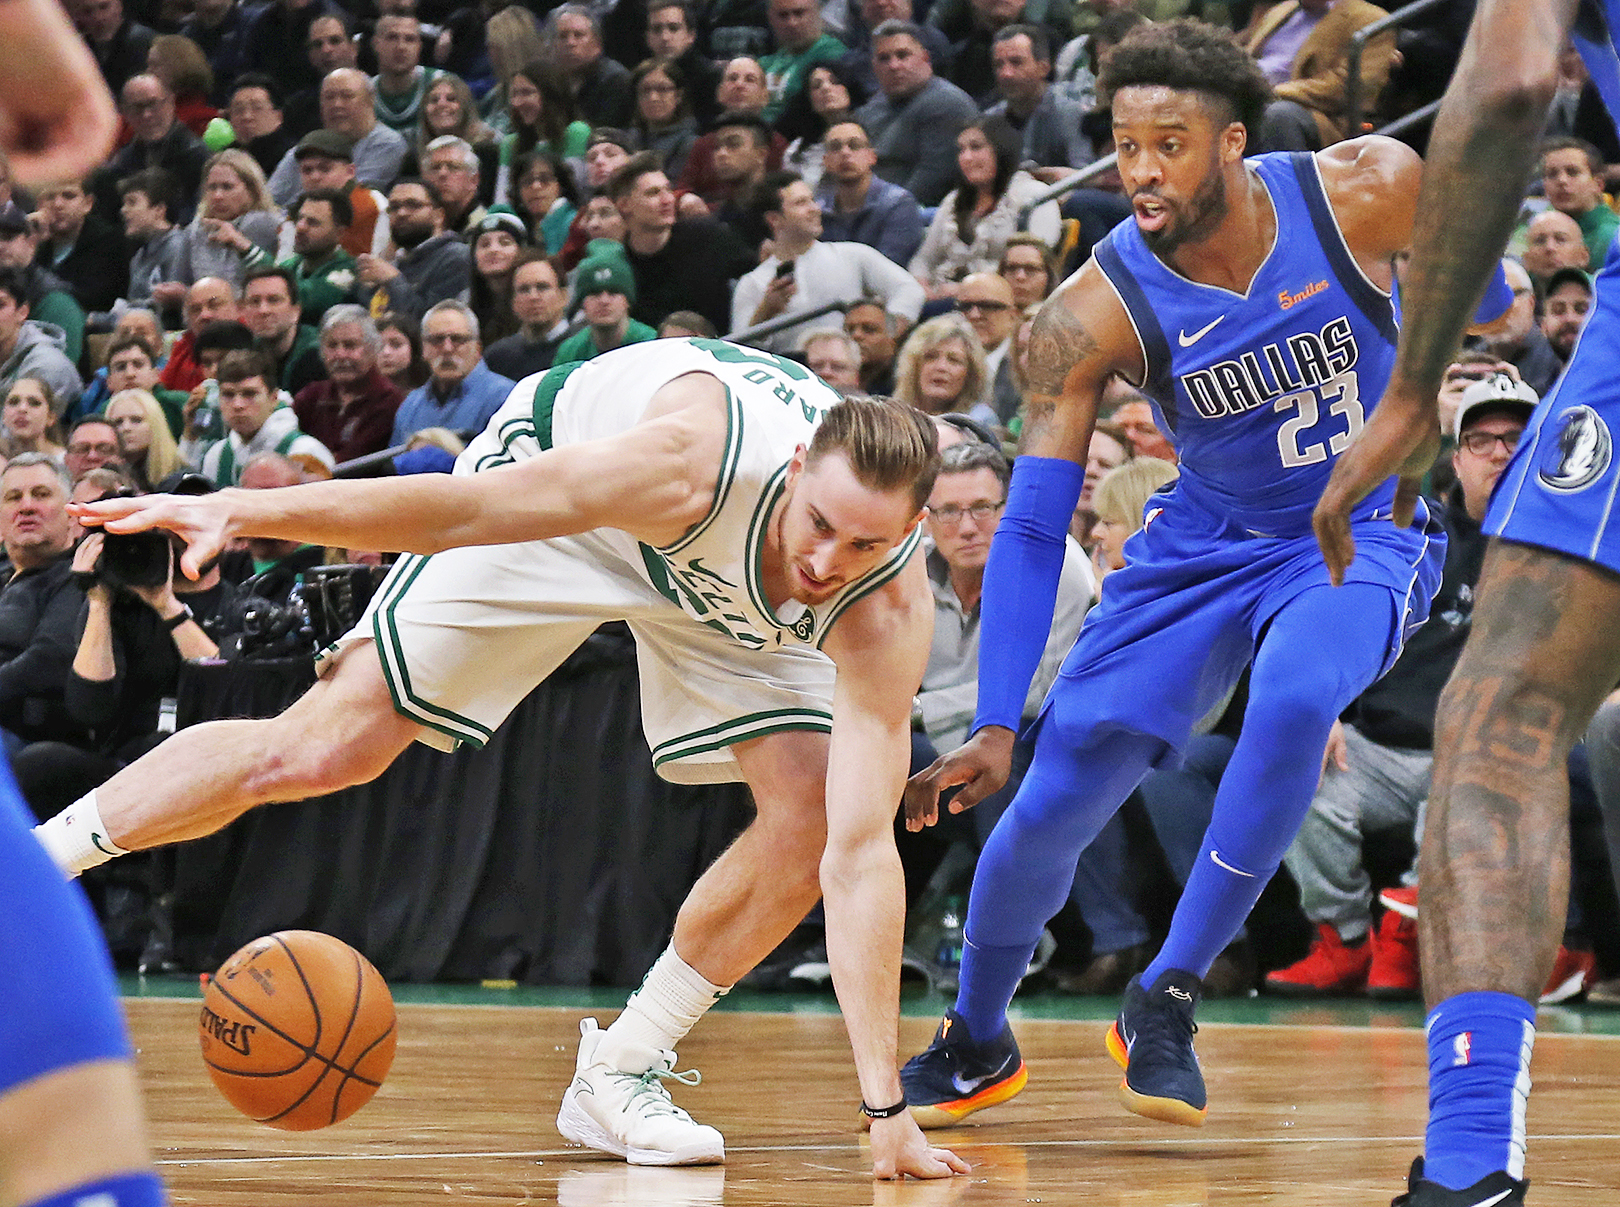 f3a48aac4 Gordon Hayward notches double-double as Celtics beat Mavs